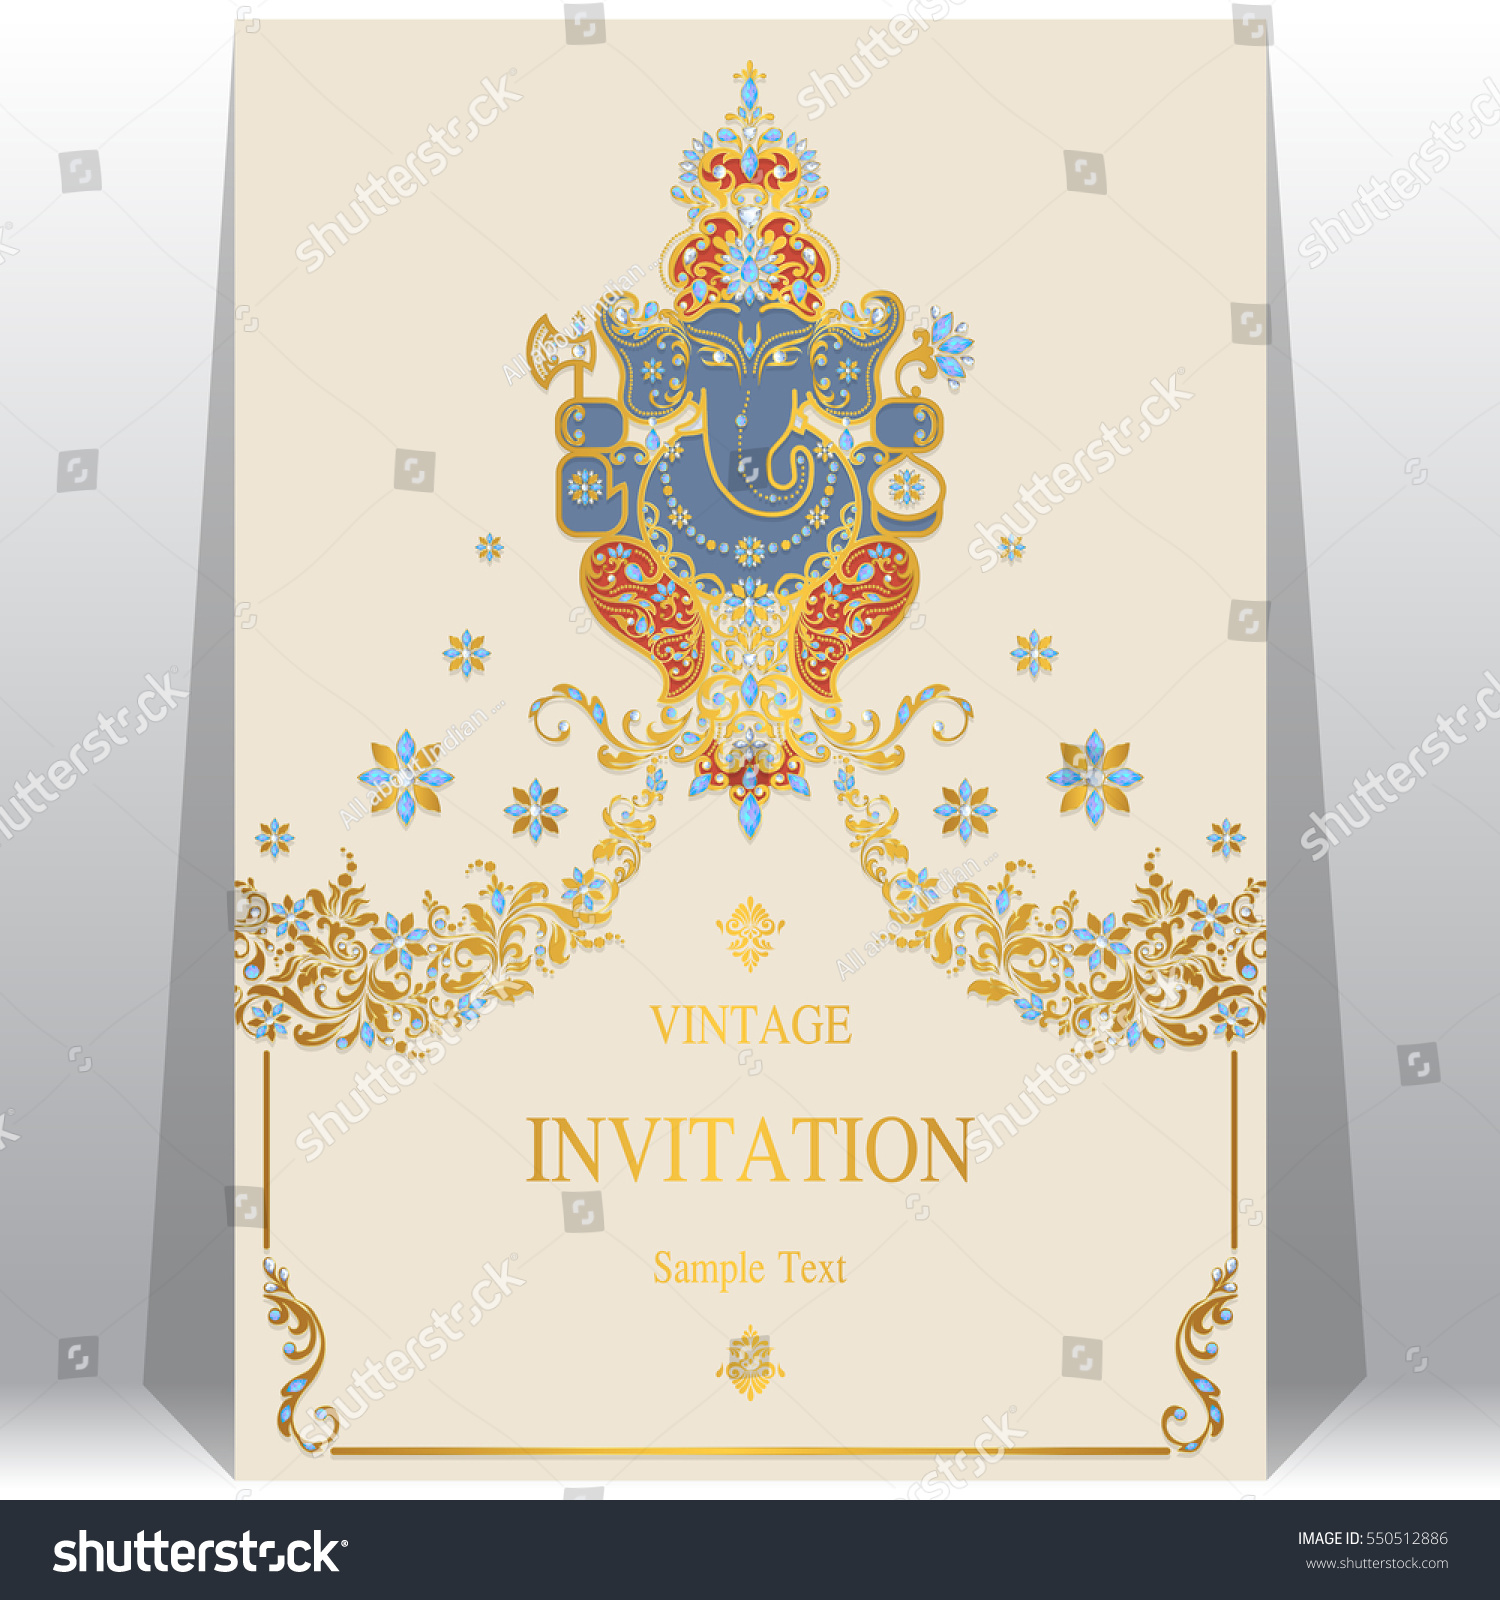 Indian Wedding Invitation Card Templates Gold Stock Vector 550512886 ...